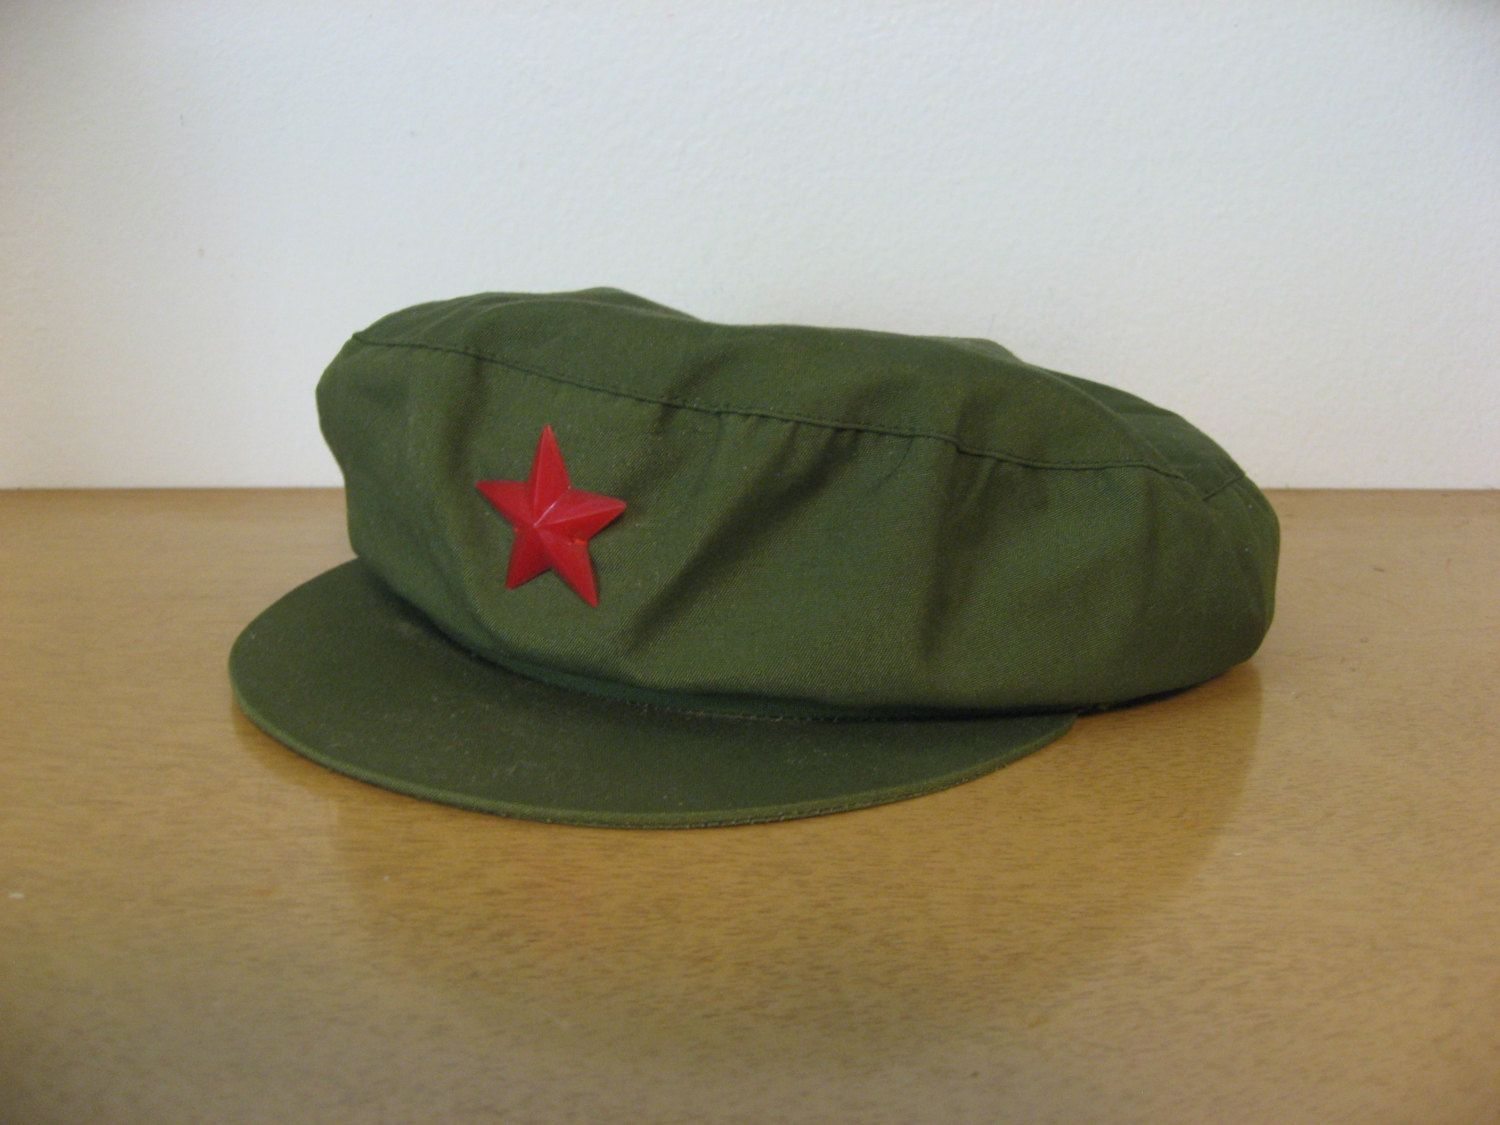 Vintage Chinese Communist Party Chairman Mao Cap Green With Red Star By